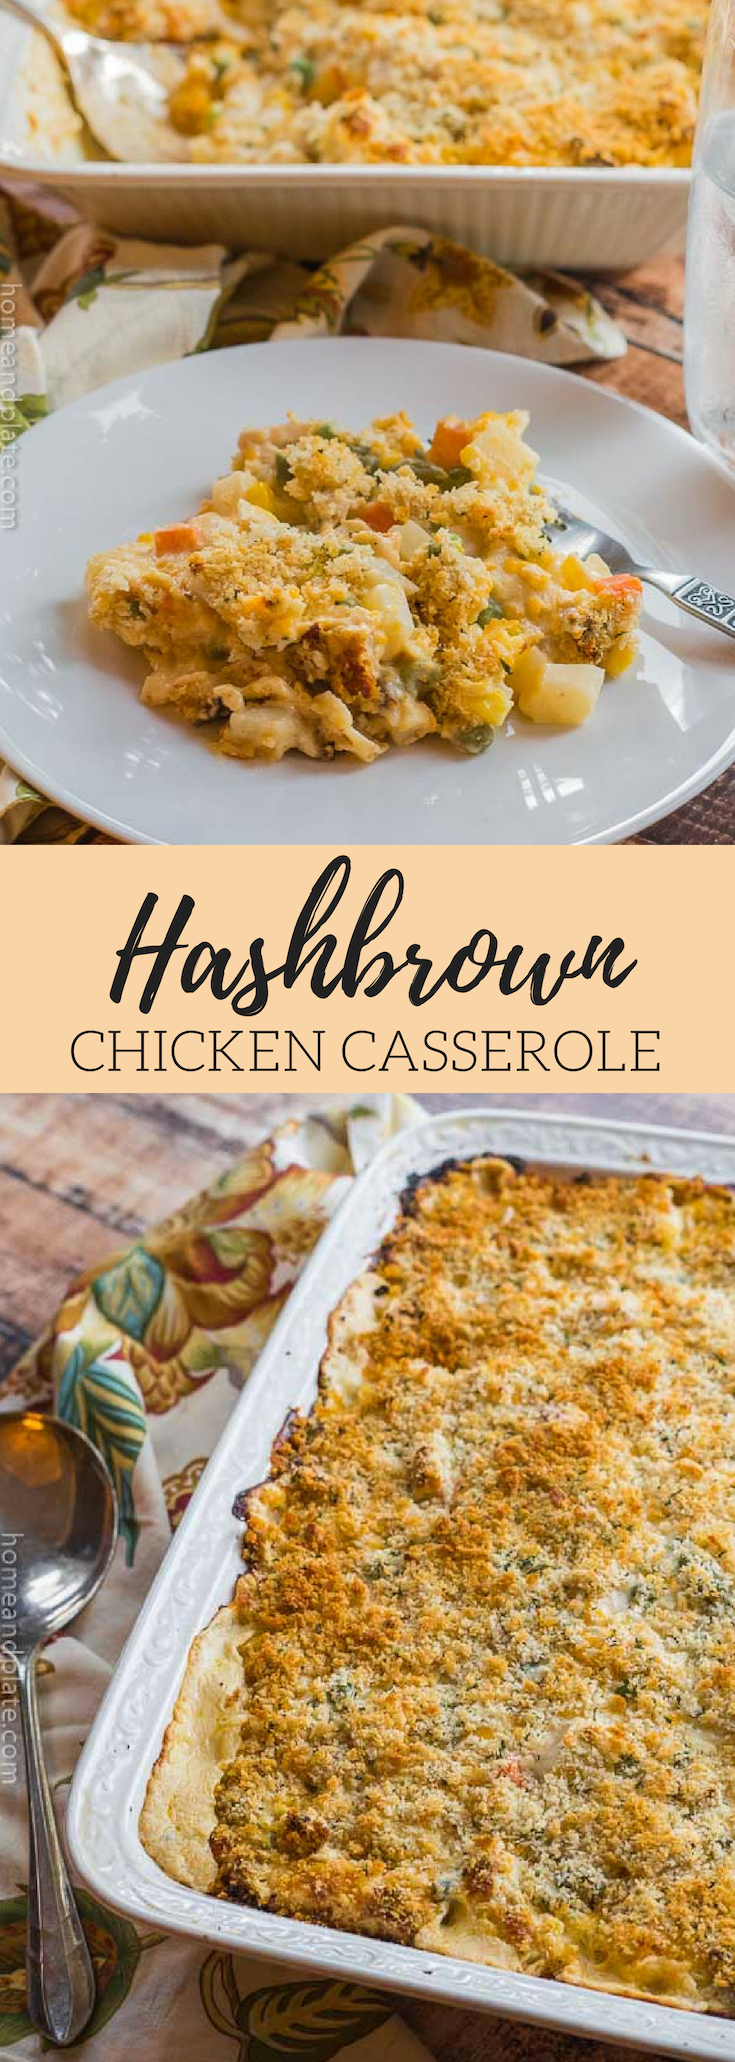 Hash Brown Chicken Casserole | Hash Brown Chicken Casserole has tender bits of roasted chicken breast, hash brown potatoes, shredded cheddar cheese and your favorite mixed vegetables. #hashbrowncasserole #hashbrownchickencasserole